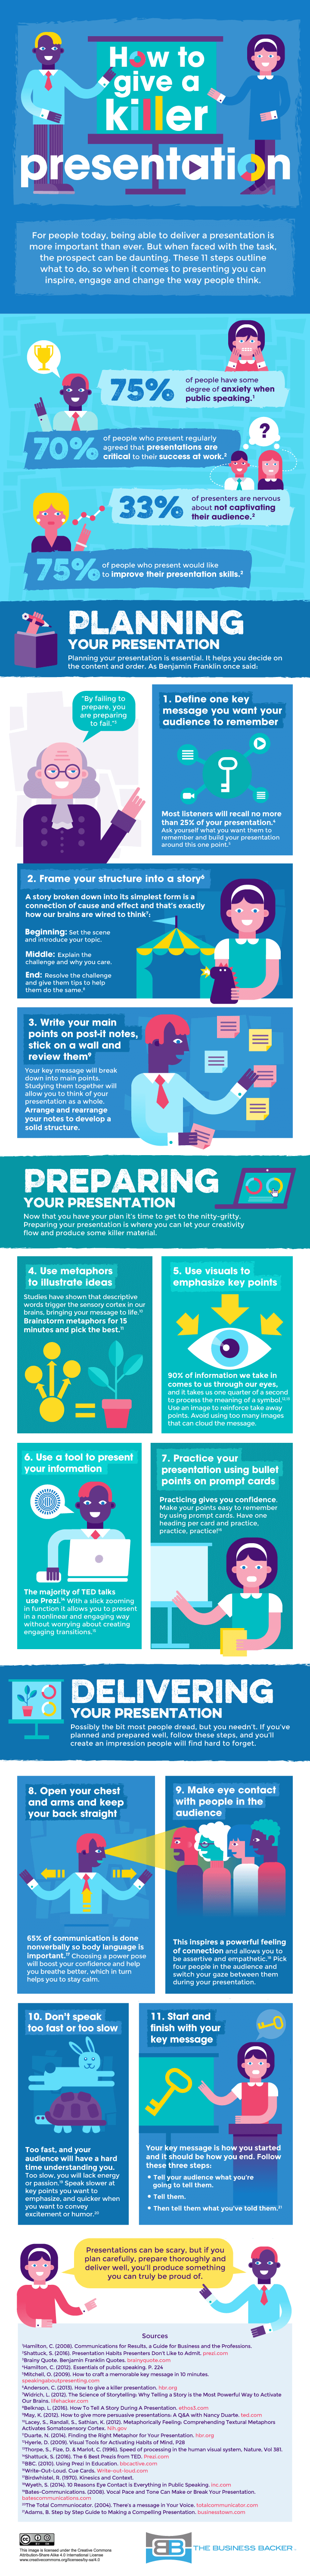 11 Tips on How to Plan, Prep, and Deliver a Killer Presentation